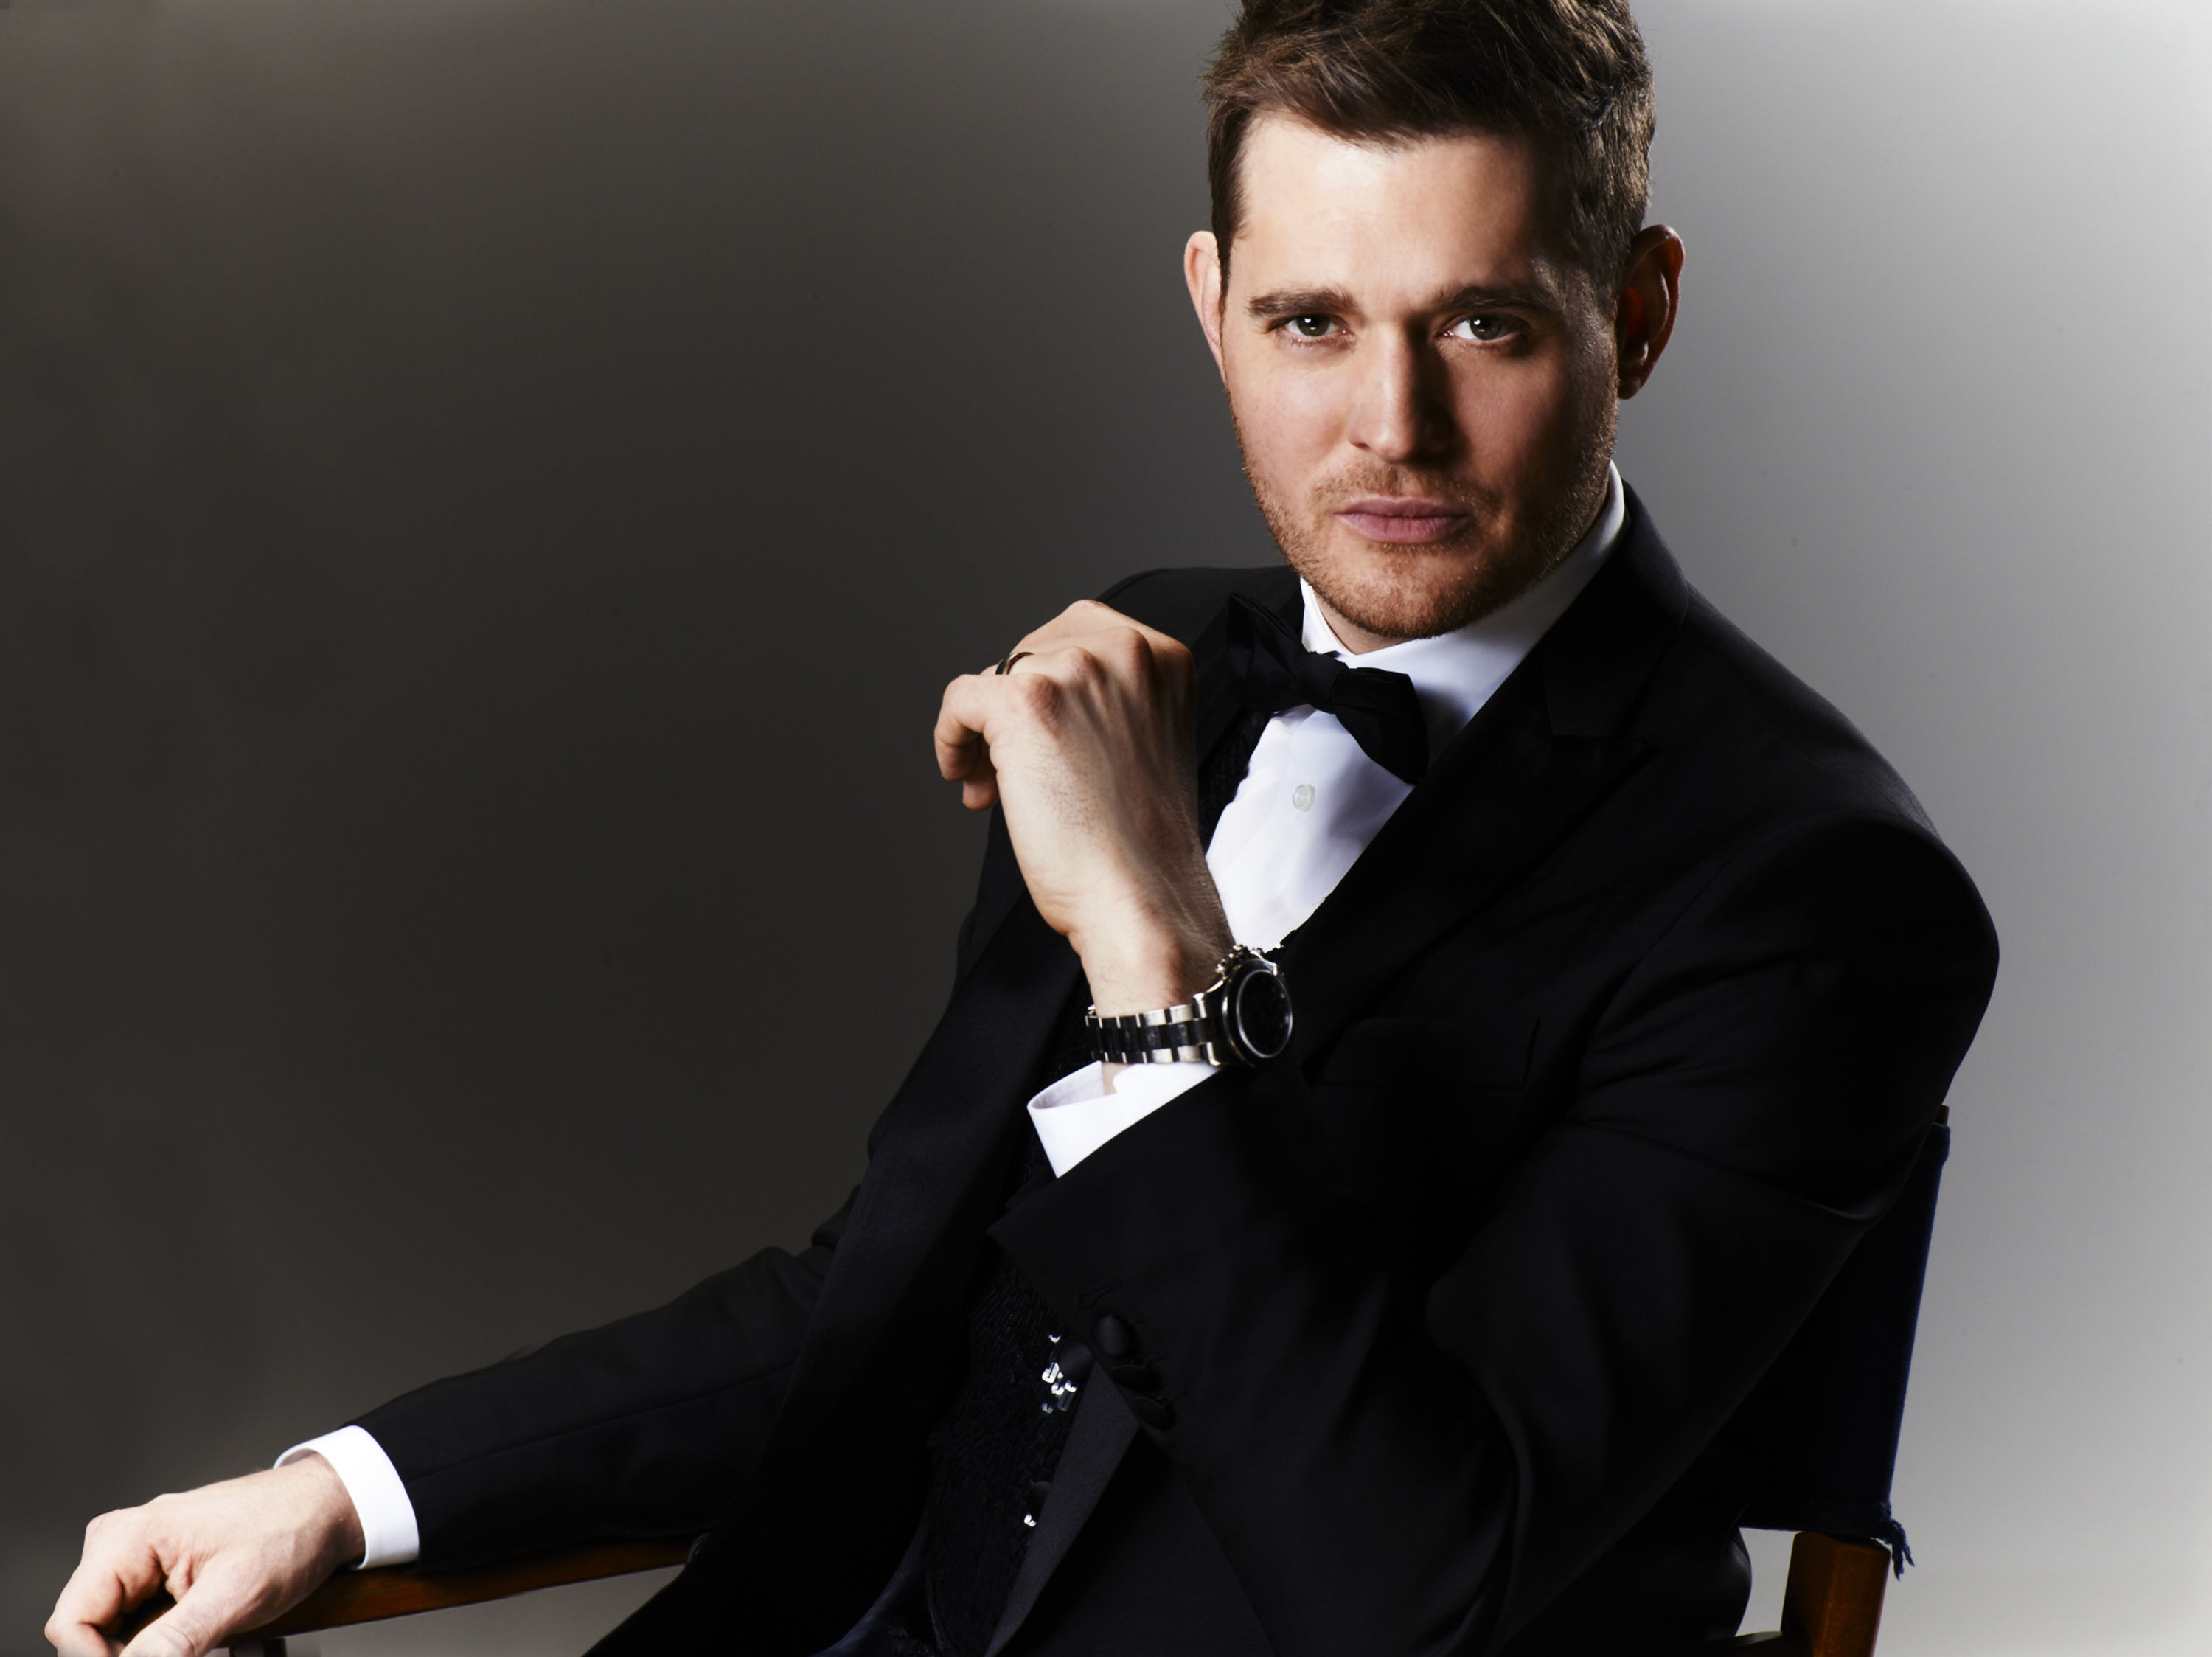 Michael Bublé press photo by Warwick Saint